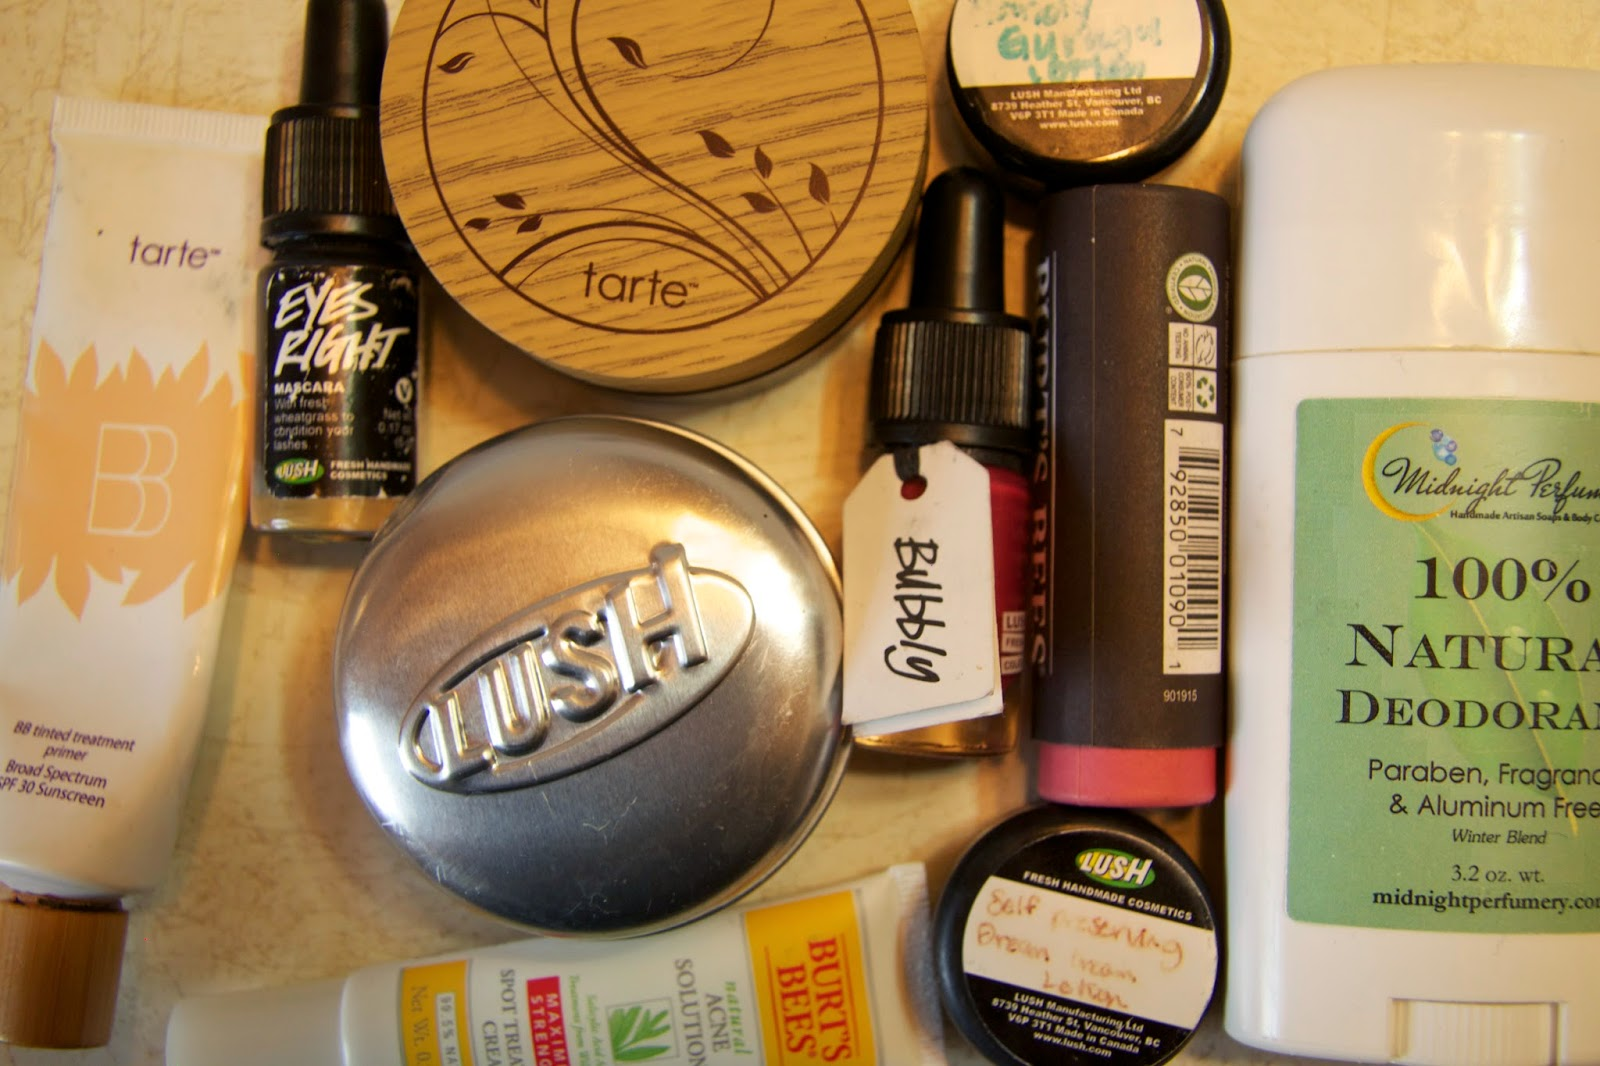 Only natural holistic eco-friendly and no animal testing beauty products